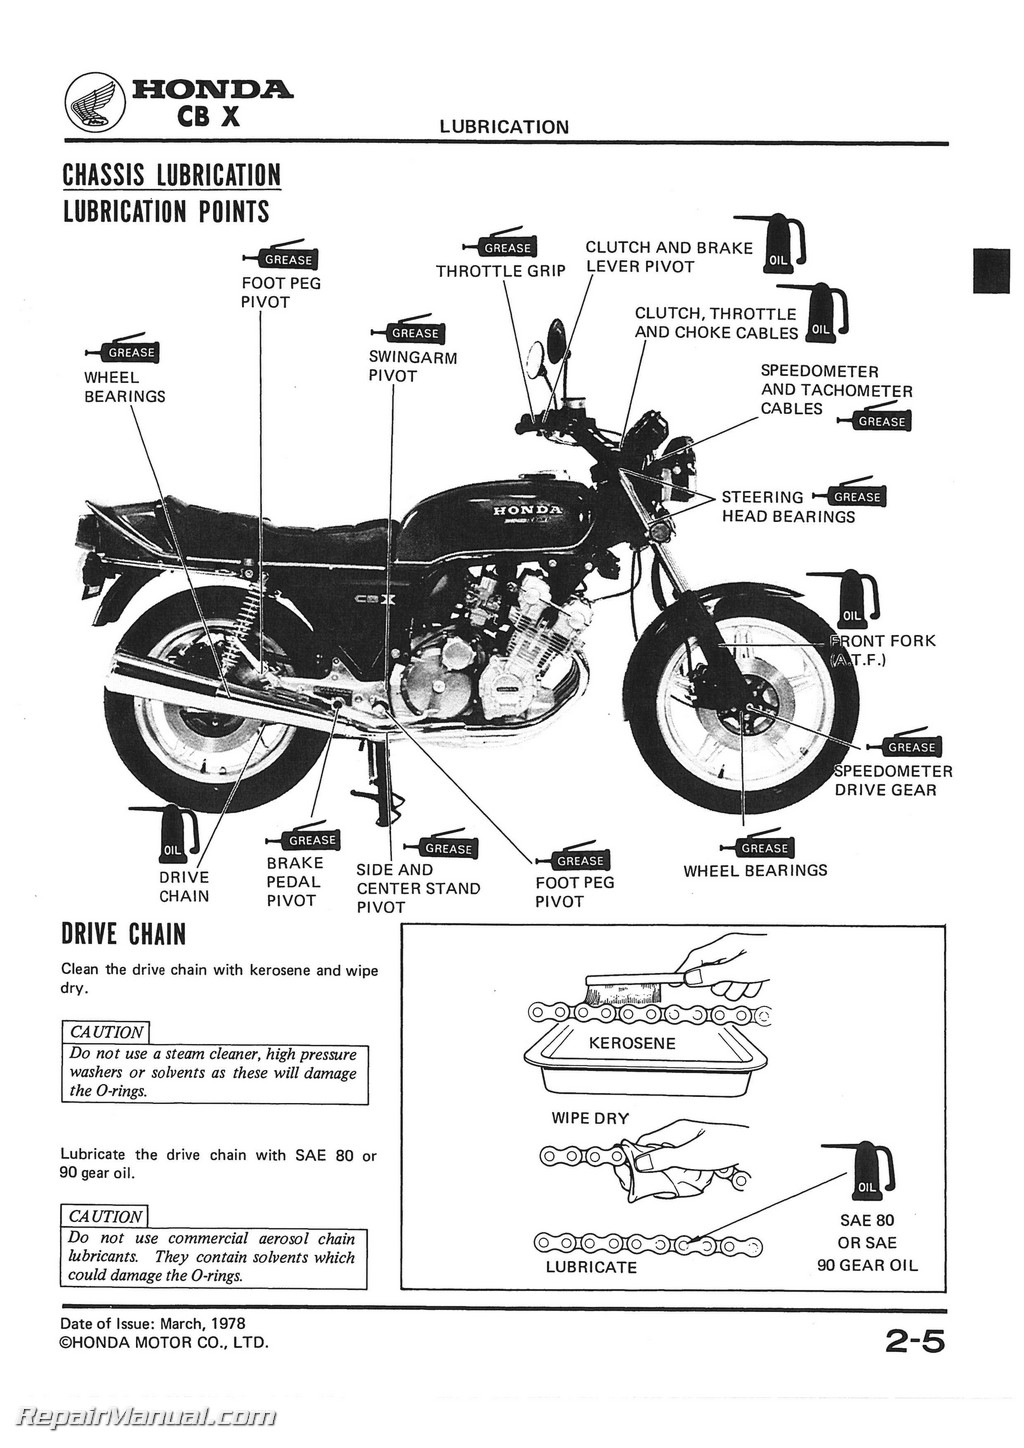 1979 1980 honda cbx1000 service manual repairmanual com workshop manual honda cbf 1000 workshop manual honda c90